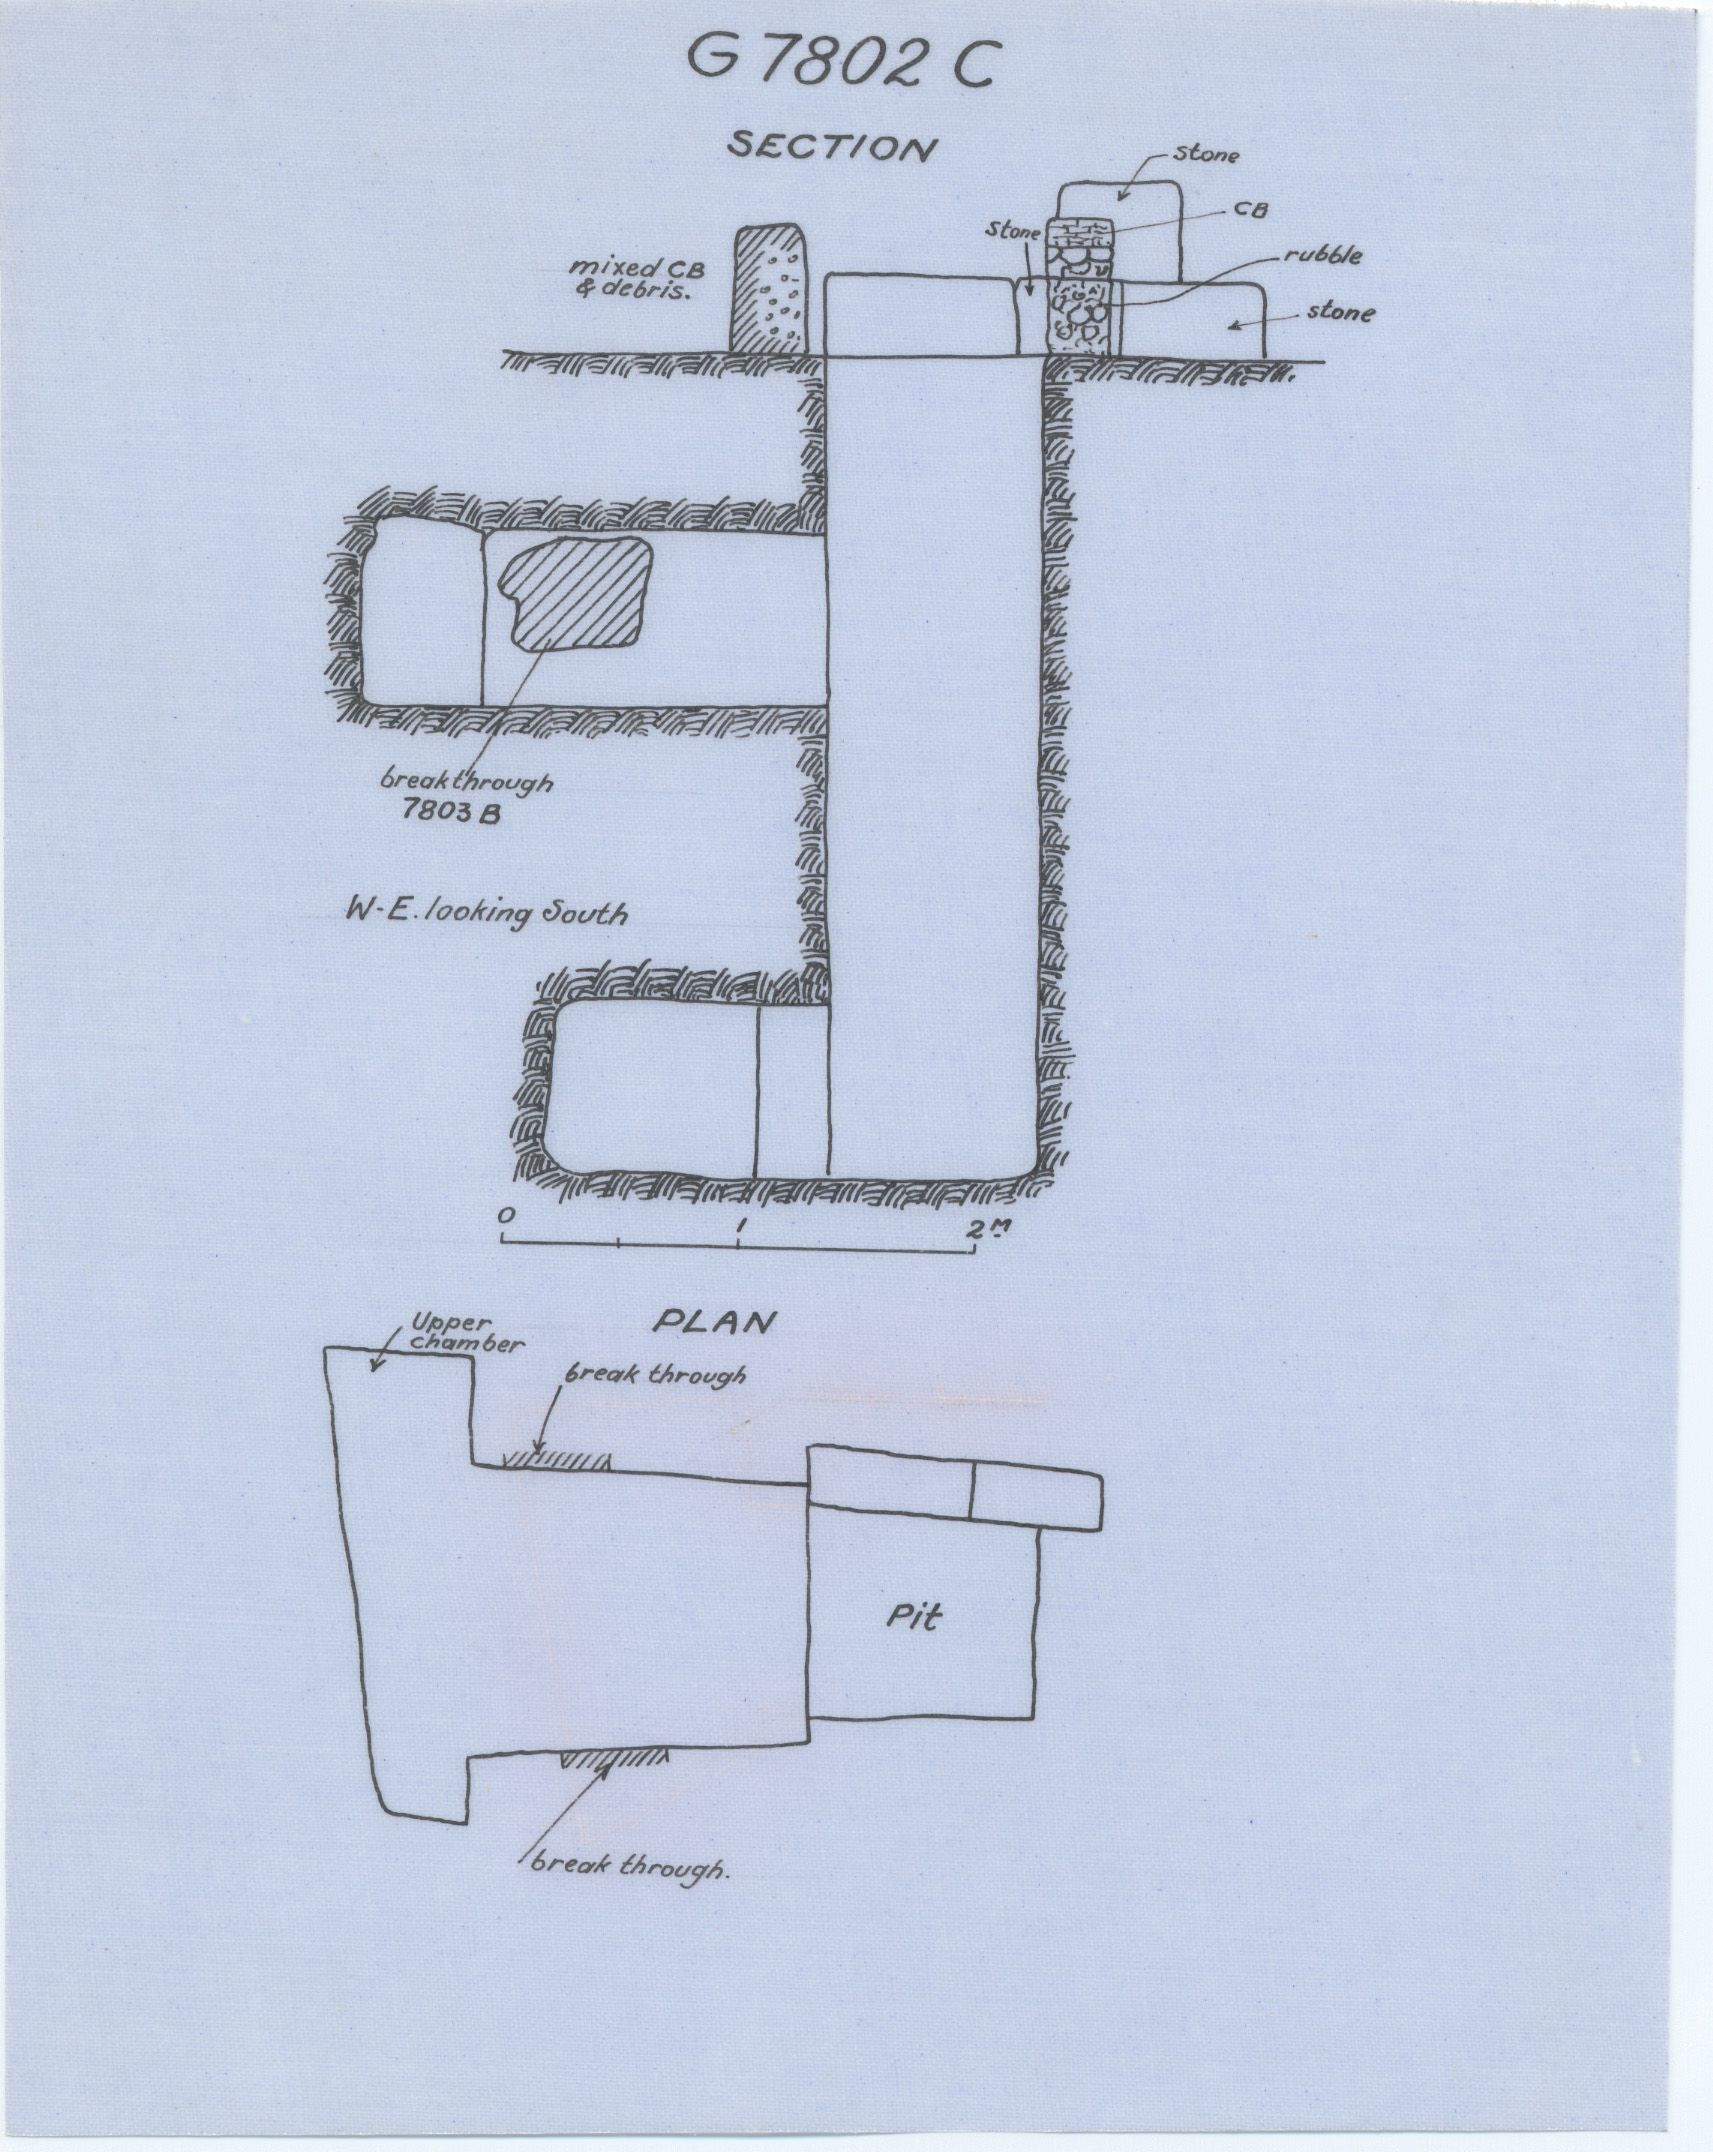 Maps and plans: G 7802, Shaft C